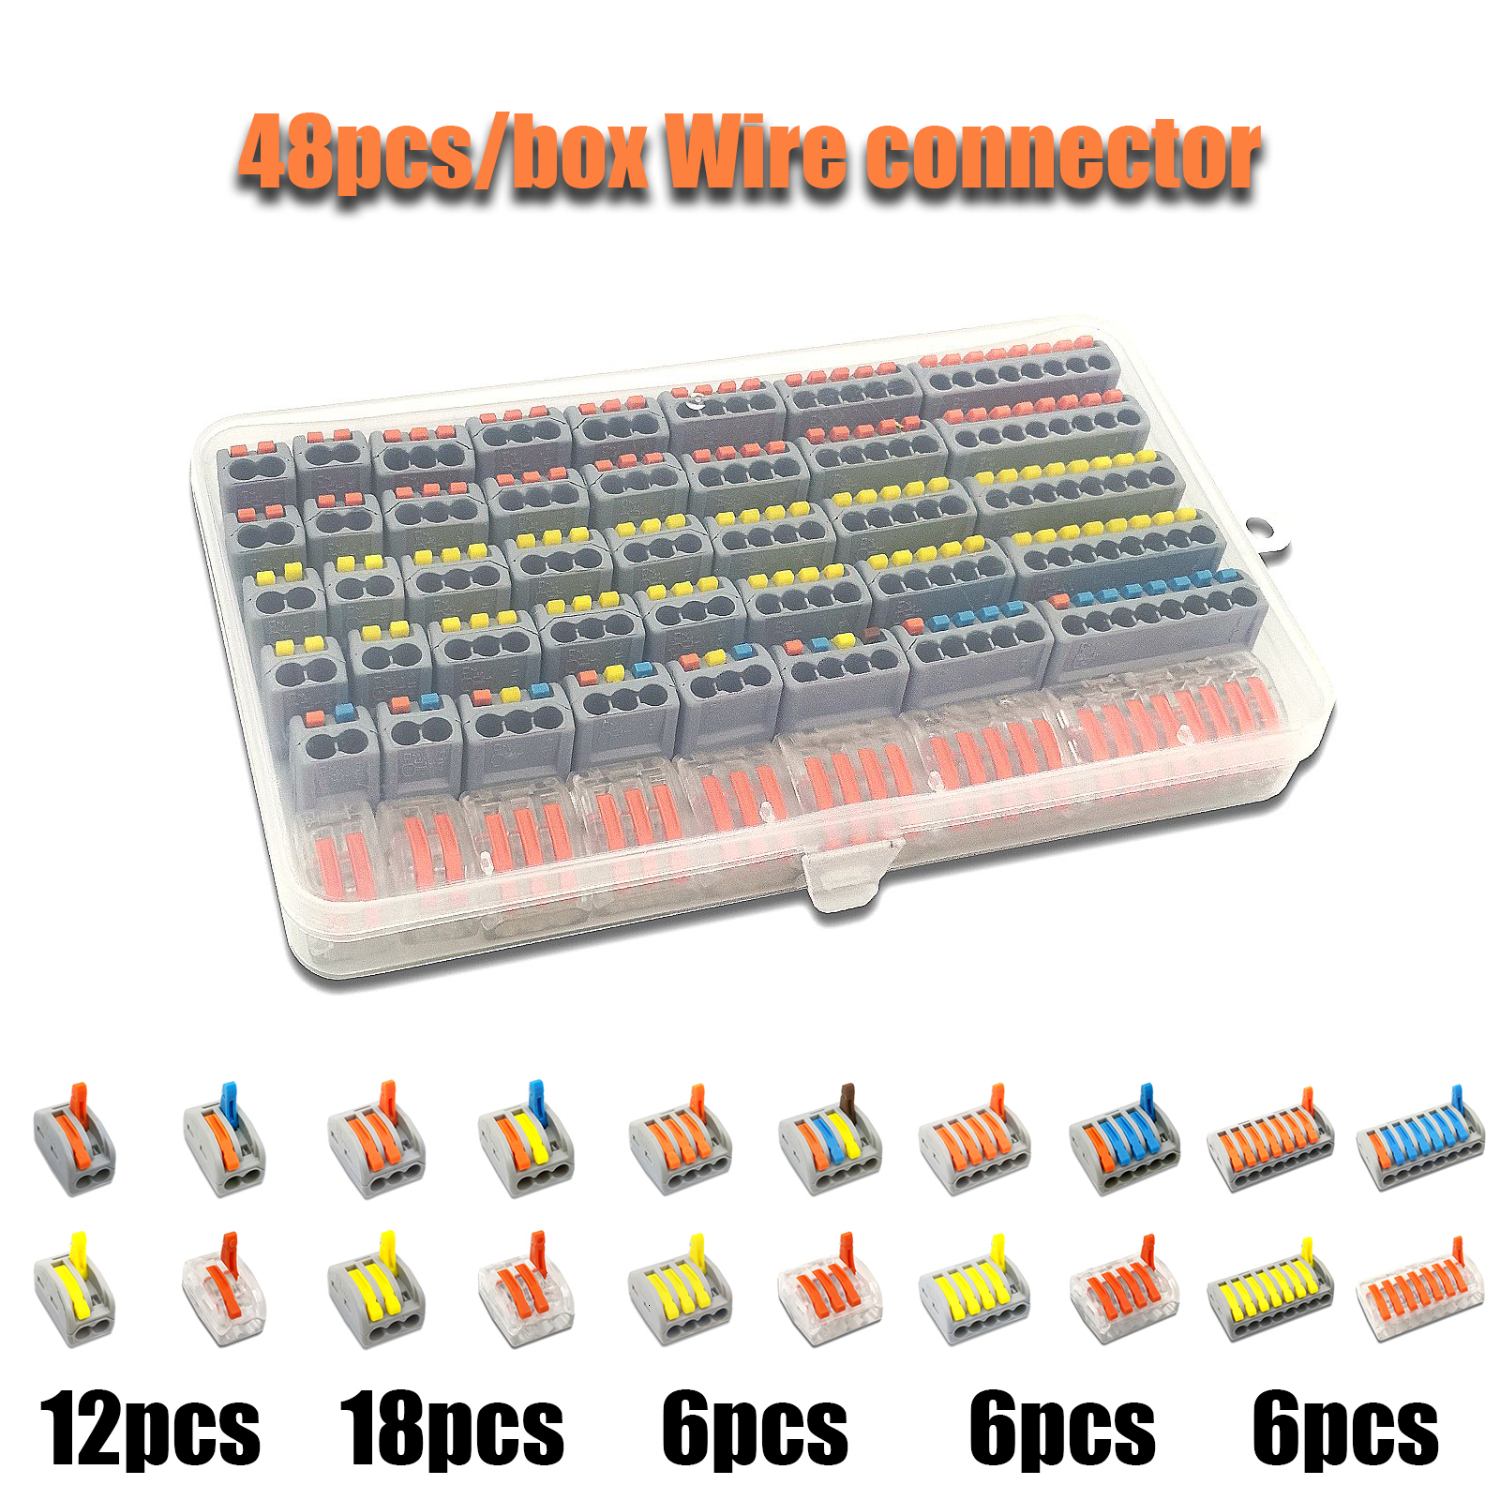 48pcs/box wire connector set box universal compact terminal block lighting wire connector for 3 room hybrid quick connector|Connectors| |  - title=